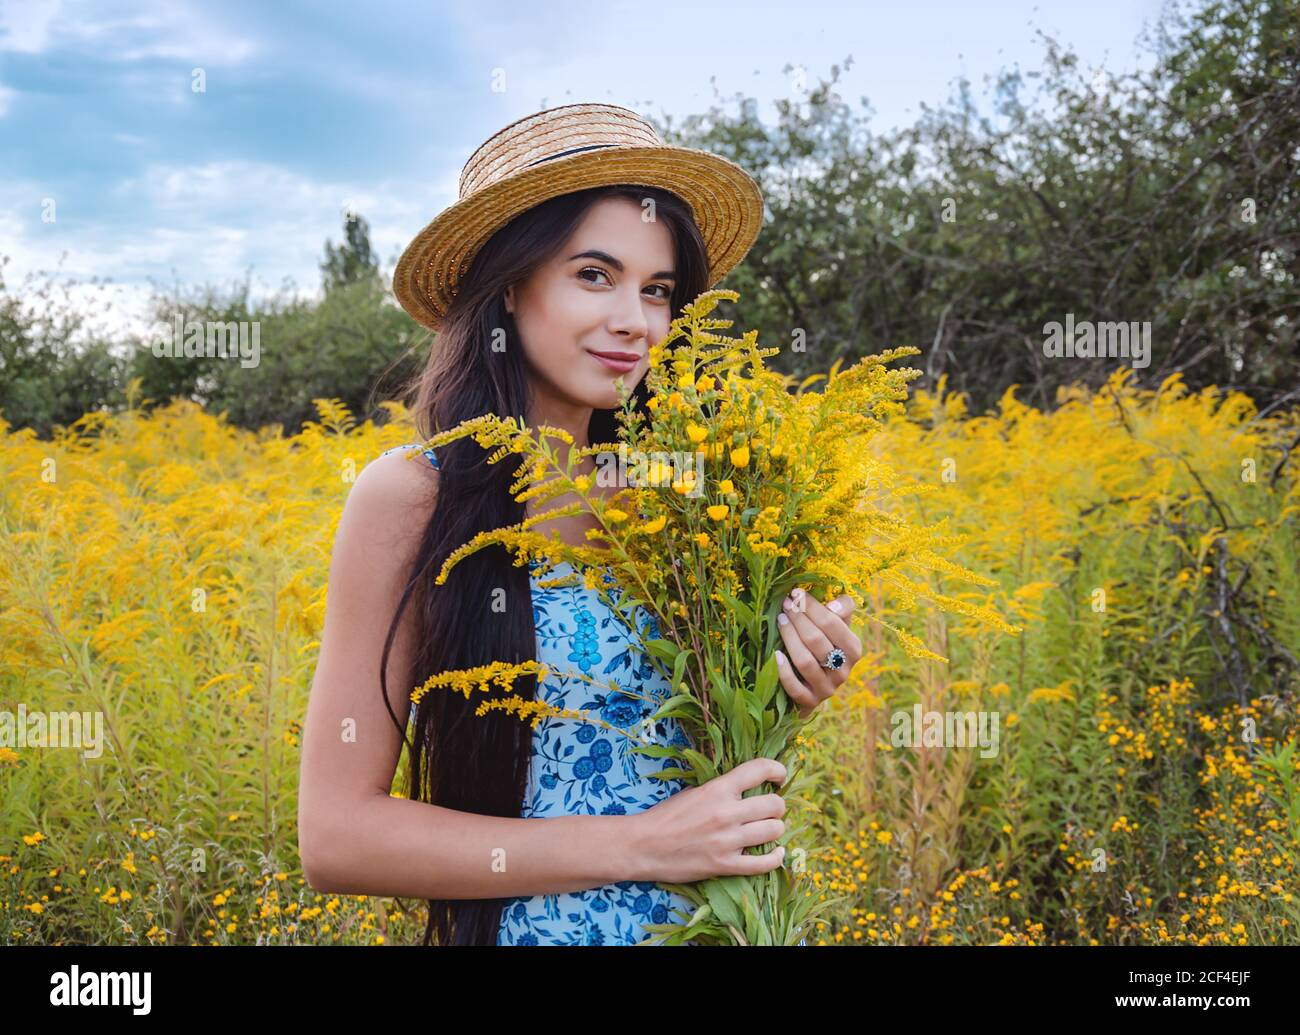 young girl in a straw hat surrounded by blooming yellow herbs, close up Stock Photo